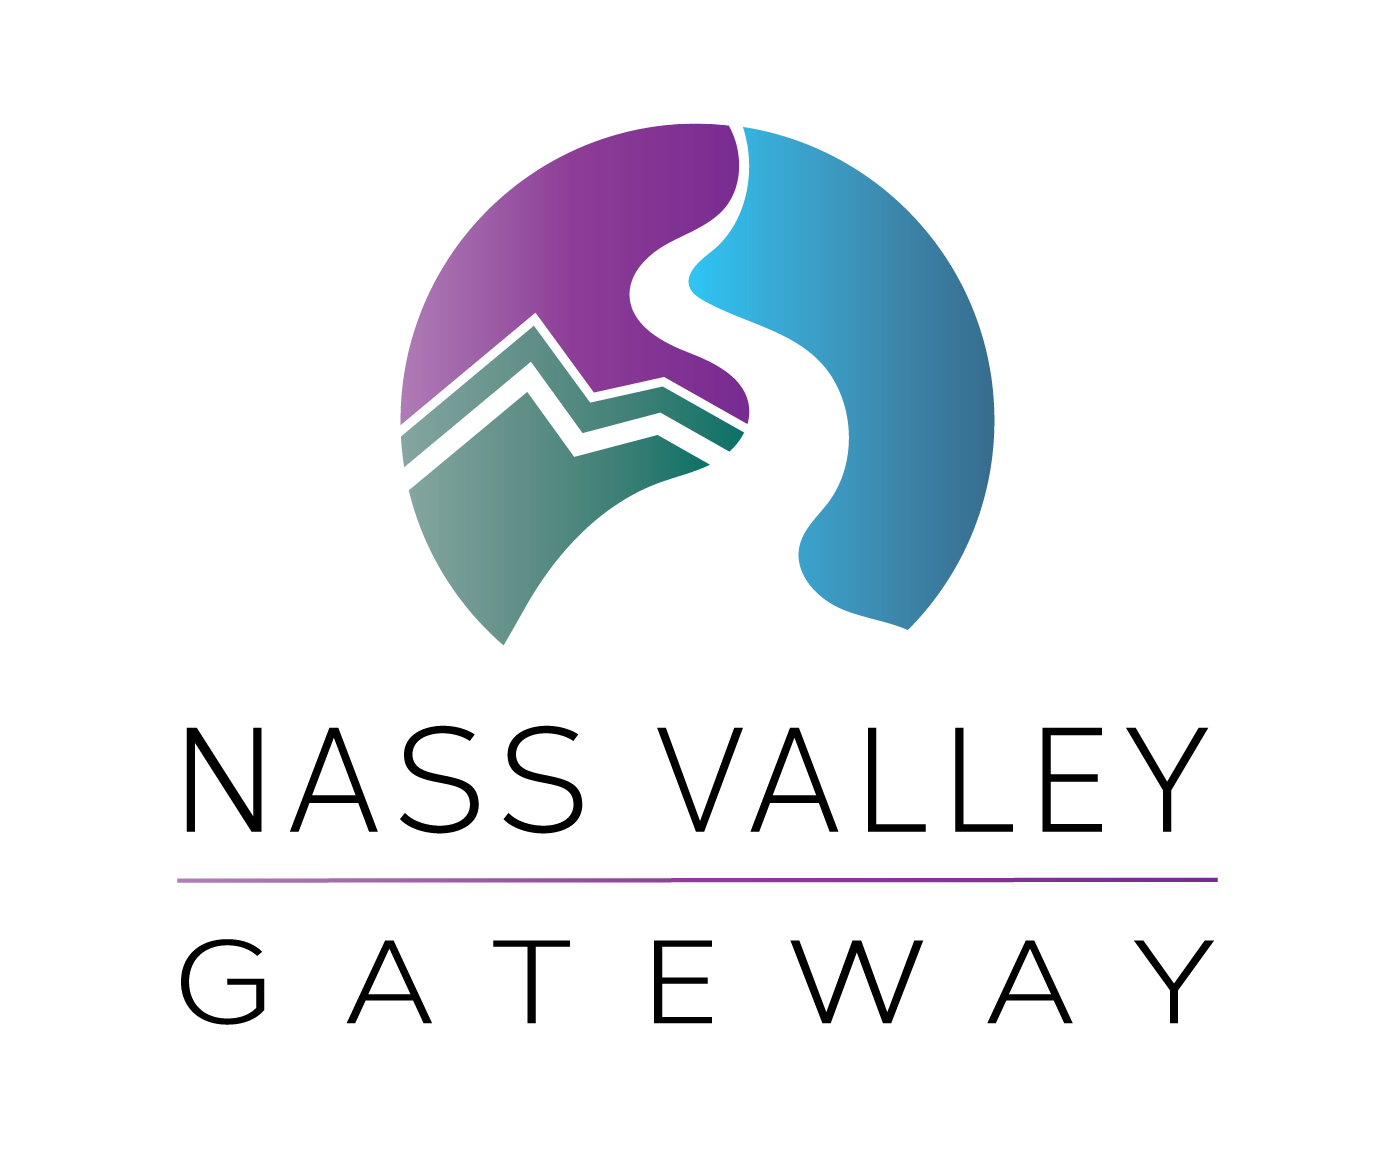 Nass Valley Gateway ltd